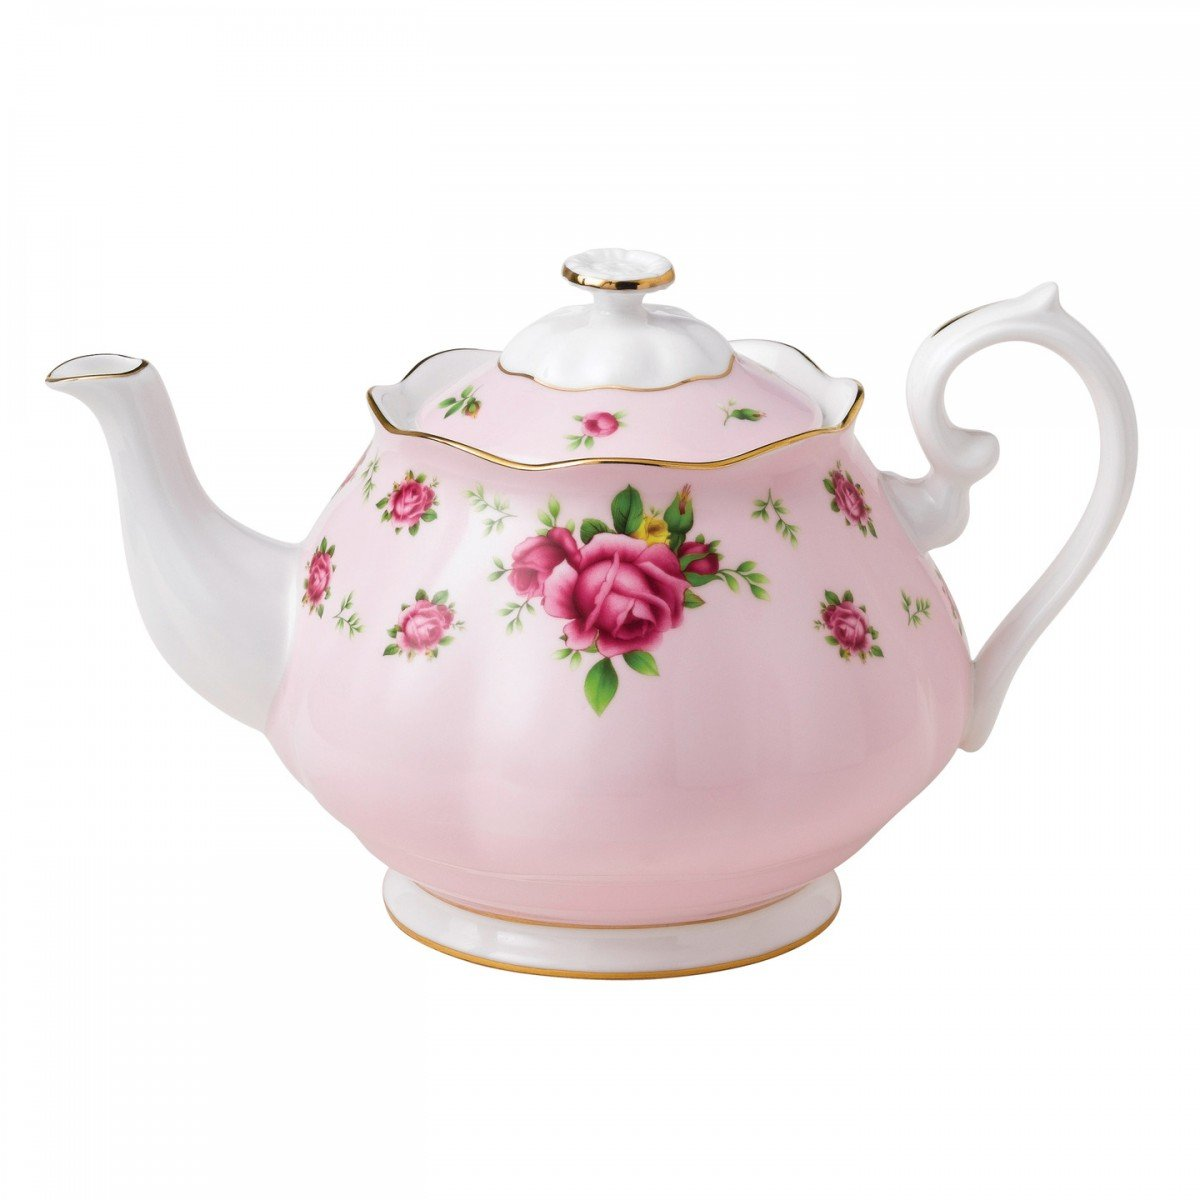 Royal Albert New Country Roses Formal Vintage Teapot, White/Pink 0